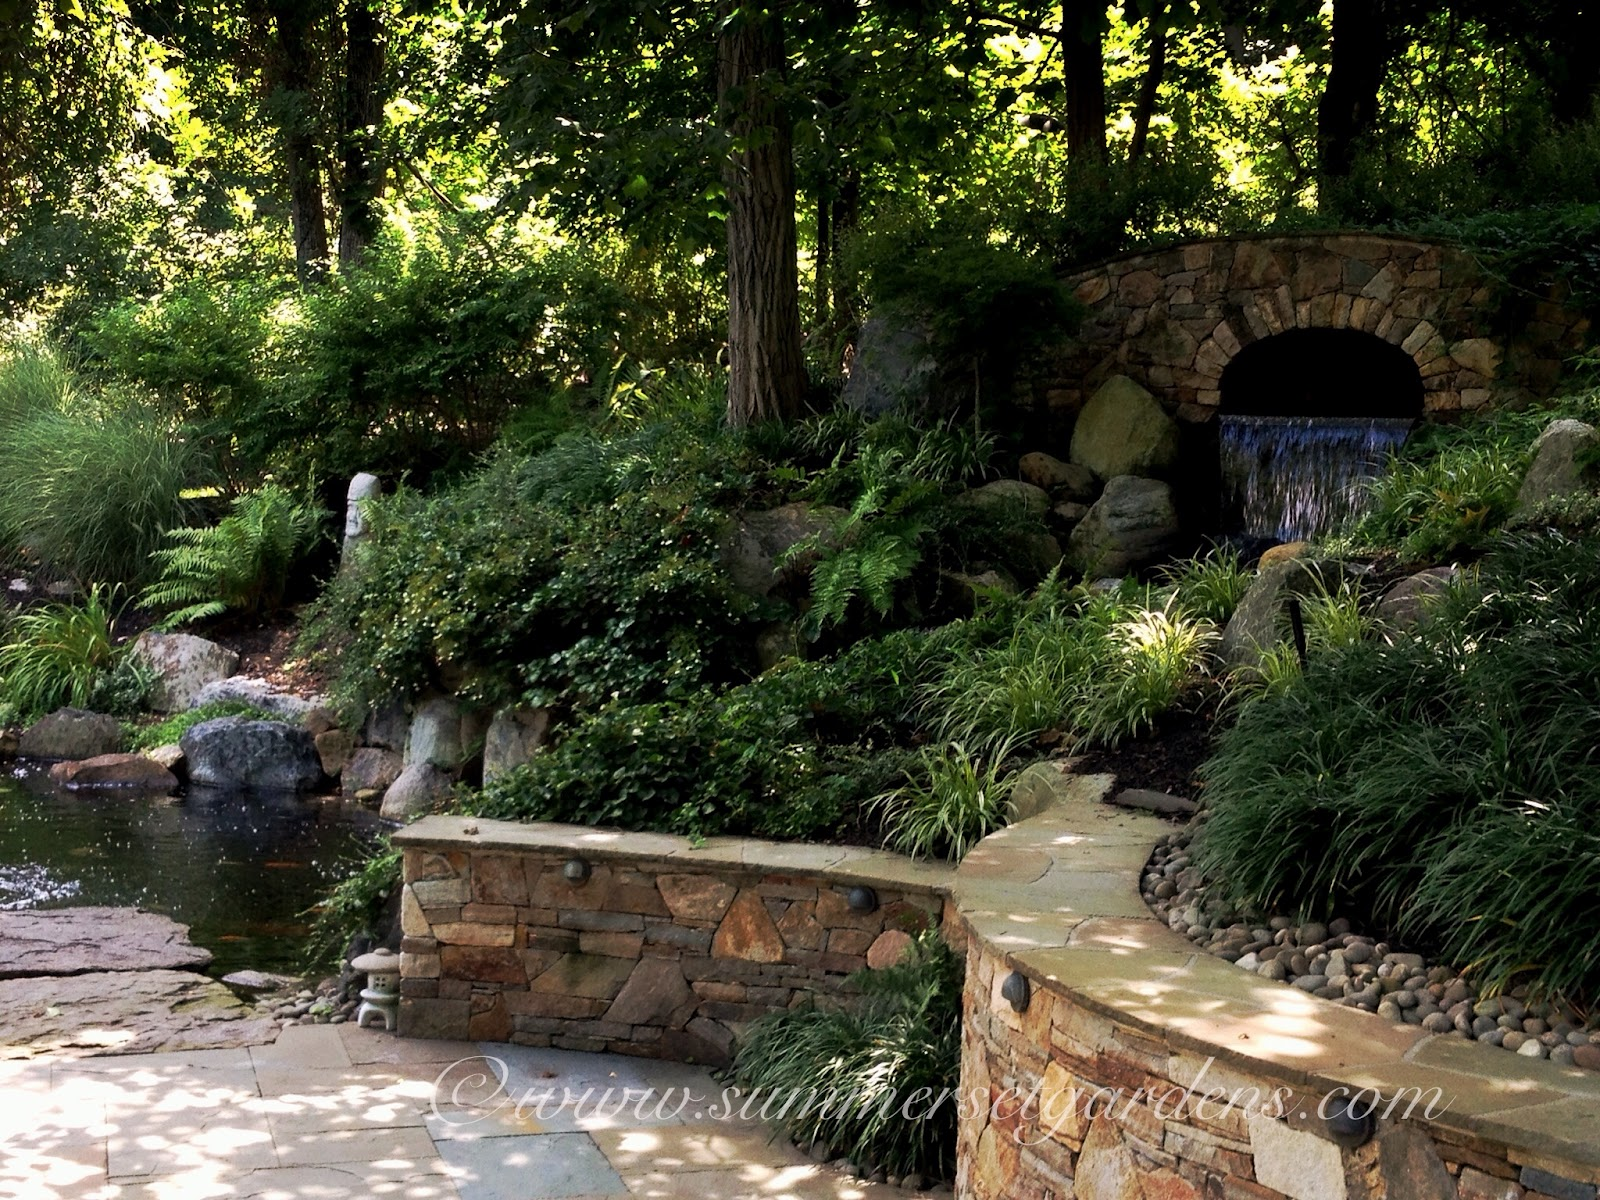 Garden Design: Pond, Waterfall & Patio in Rockland County, NY